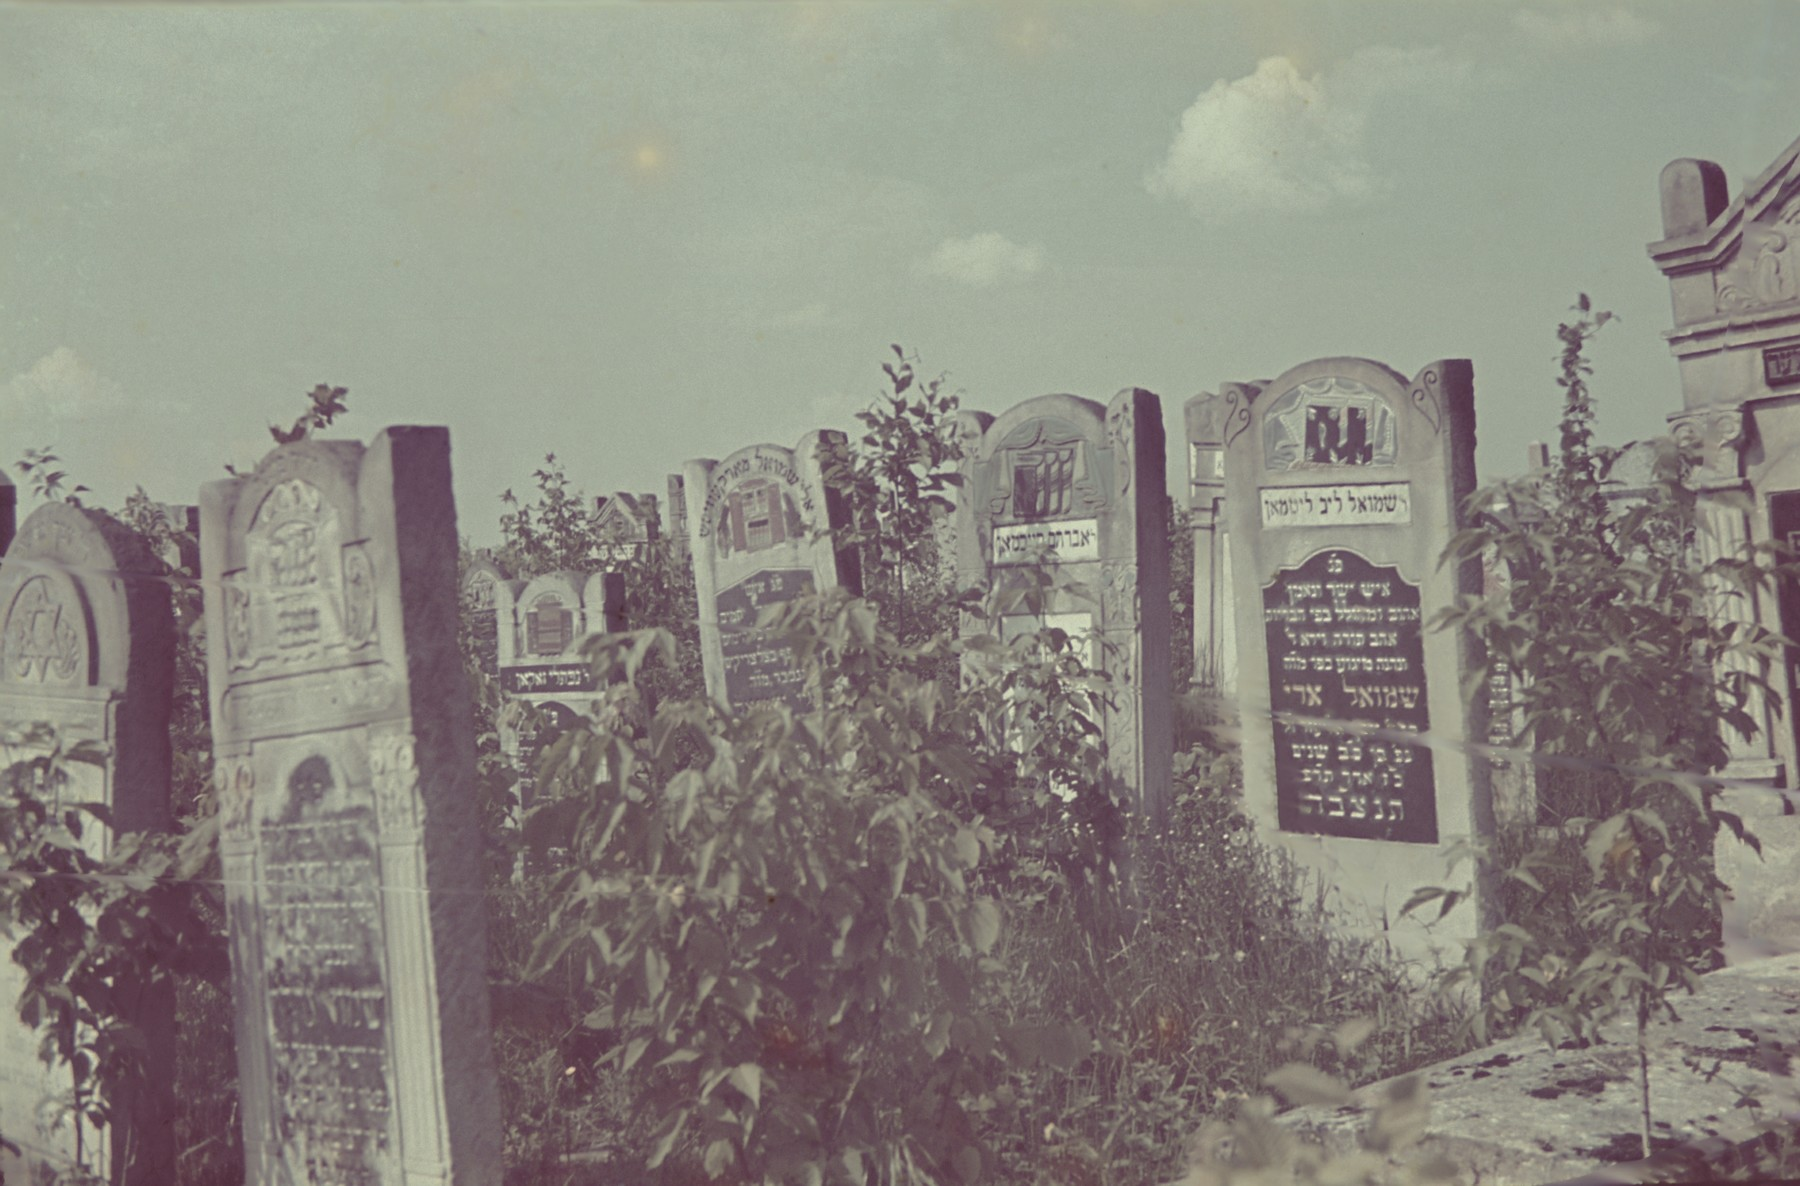 View of tombstones in the Lodz ghetto Jewish cemetery.